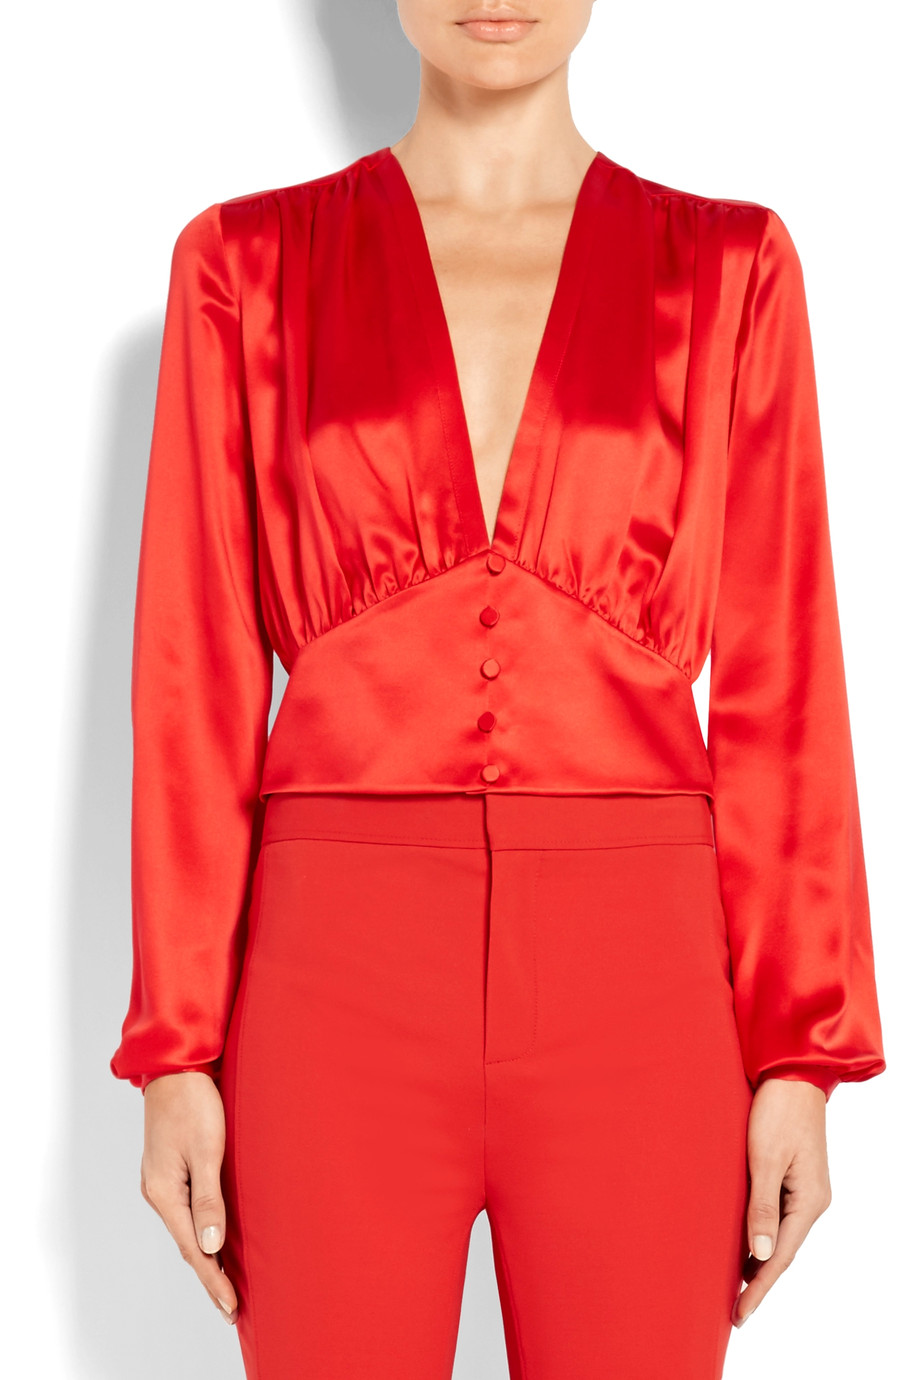 Satin blouse Givenchy buy Satin blouse Givenchy internet shop